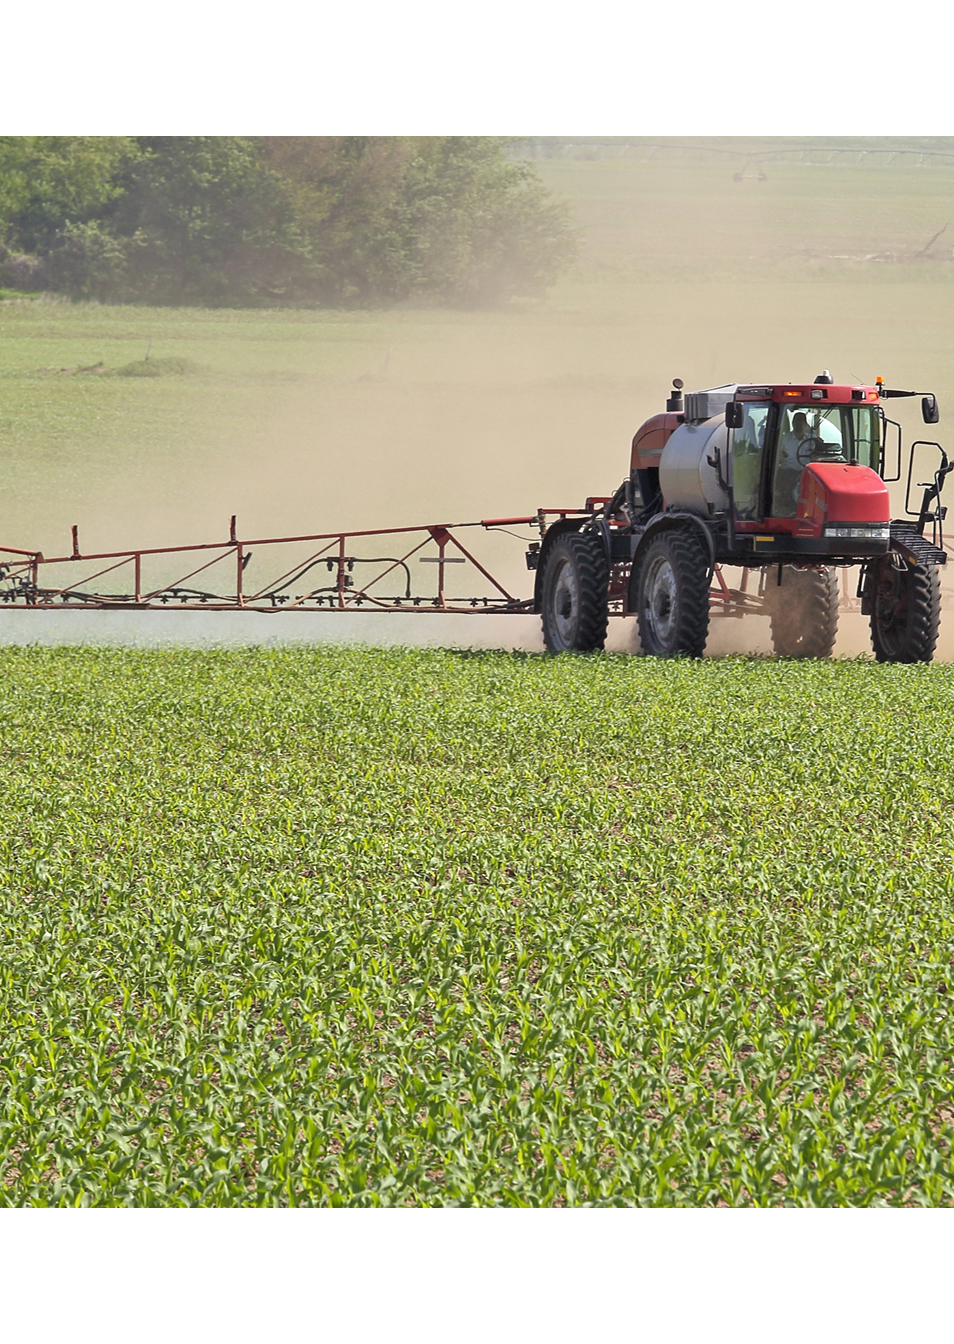 GGB agricultural bearings selected for use in the folding boom pivots of self-propelled sprayers